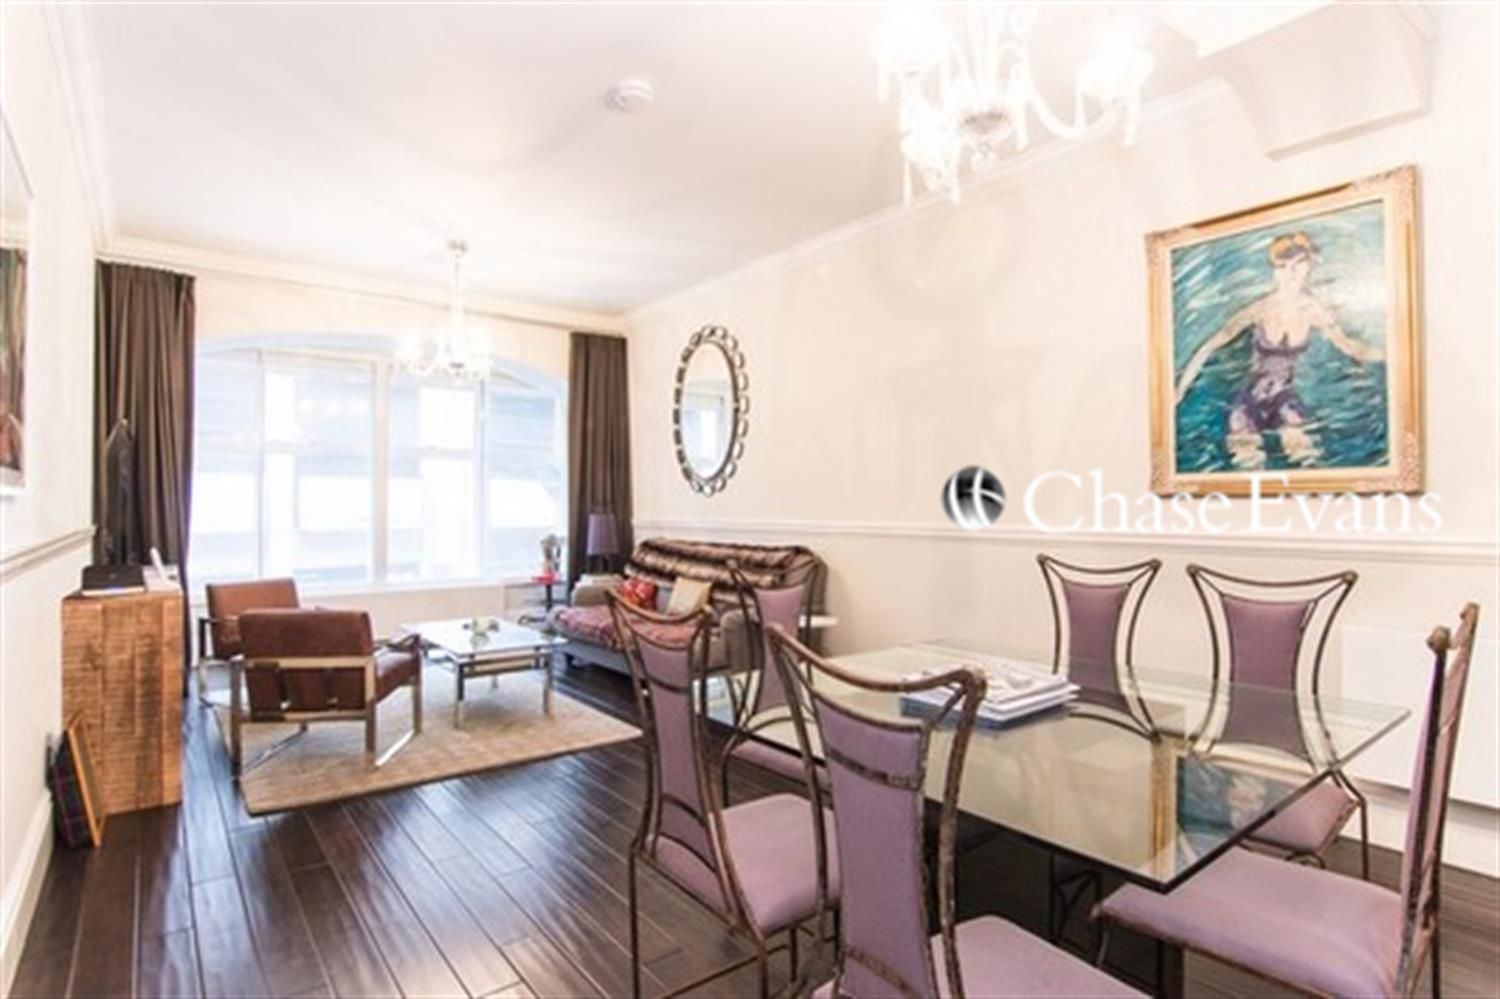 Sw1p Westminster Artillery Row 2 Bed Property Estate Agents In Docklands Canary Wharf And Isle Of Dogs Ch One Bedroom Apartment Two Bedroom Bedroom Interior